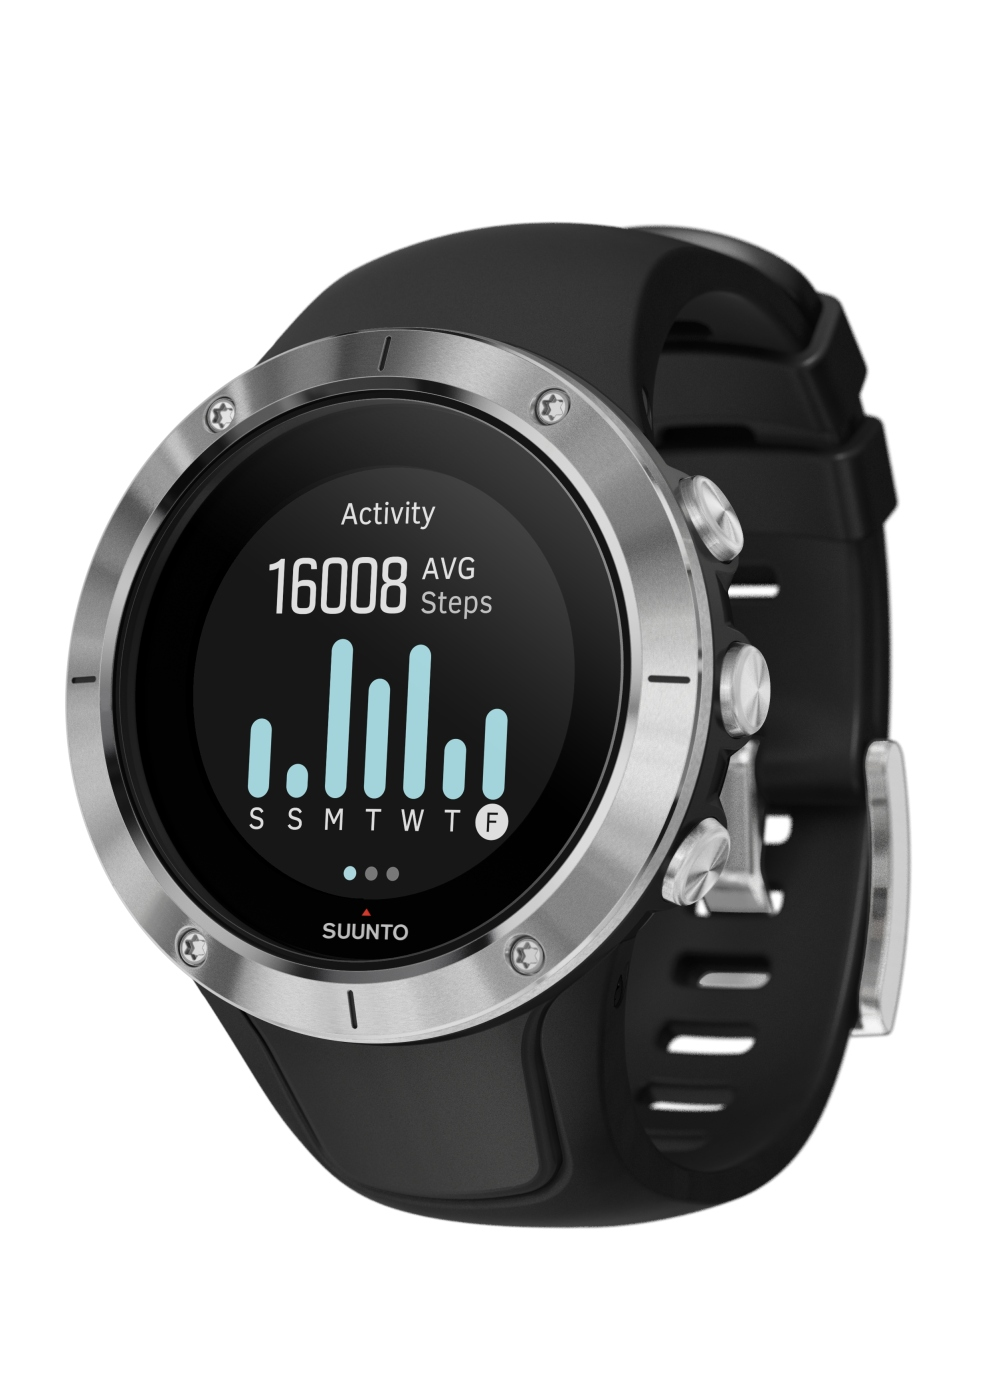 SS023425000 - SPARTAN - Trainer Wrist HR Steel - Perspective View_INS-Activity-Steps-7day